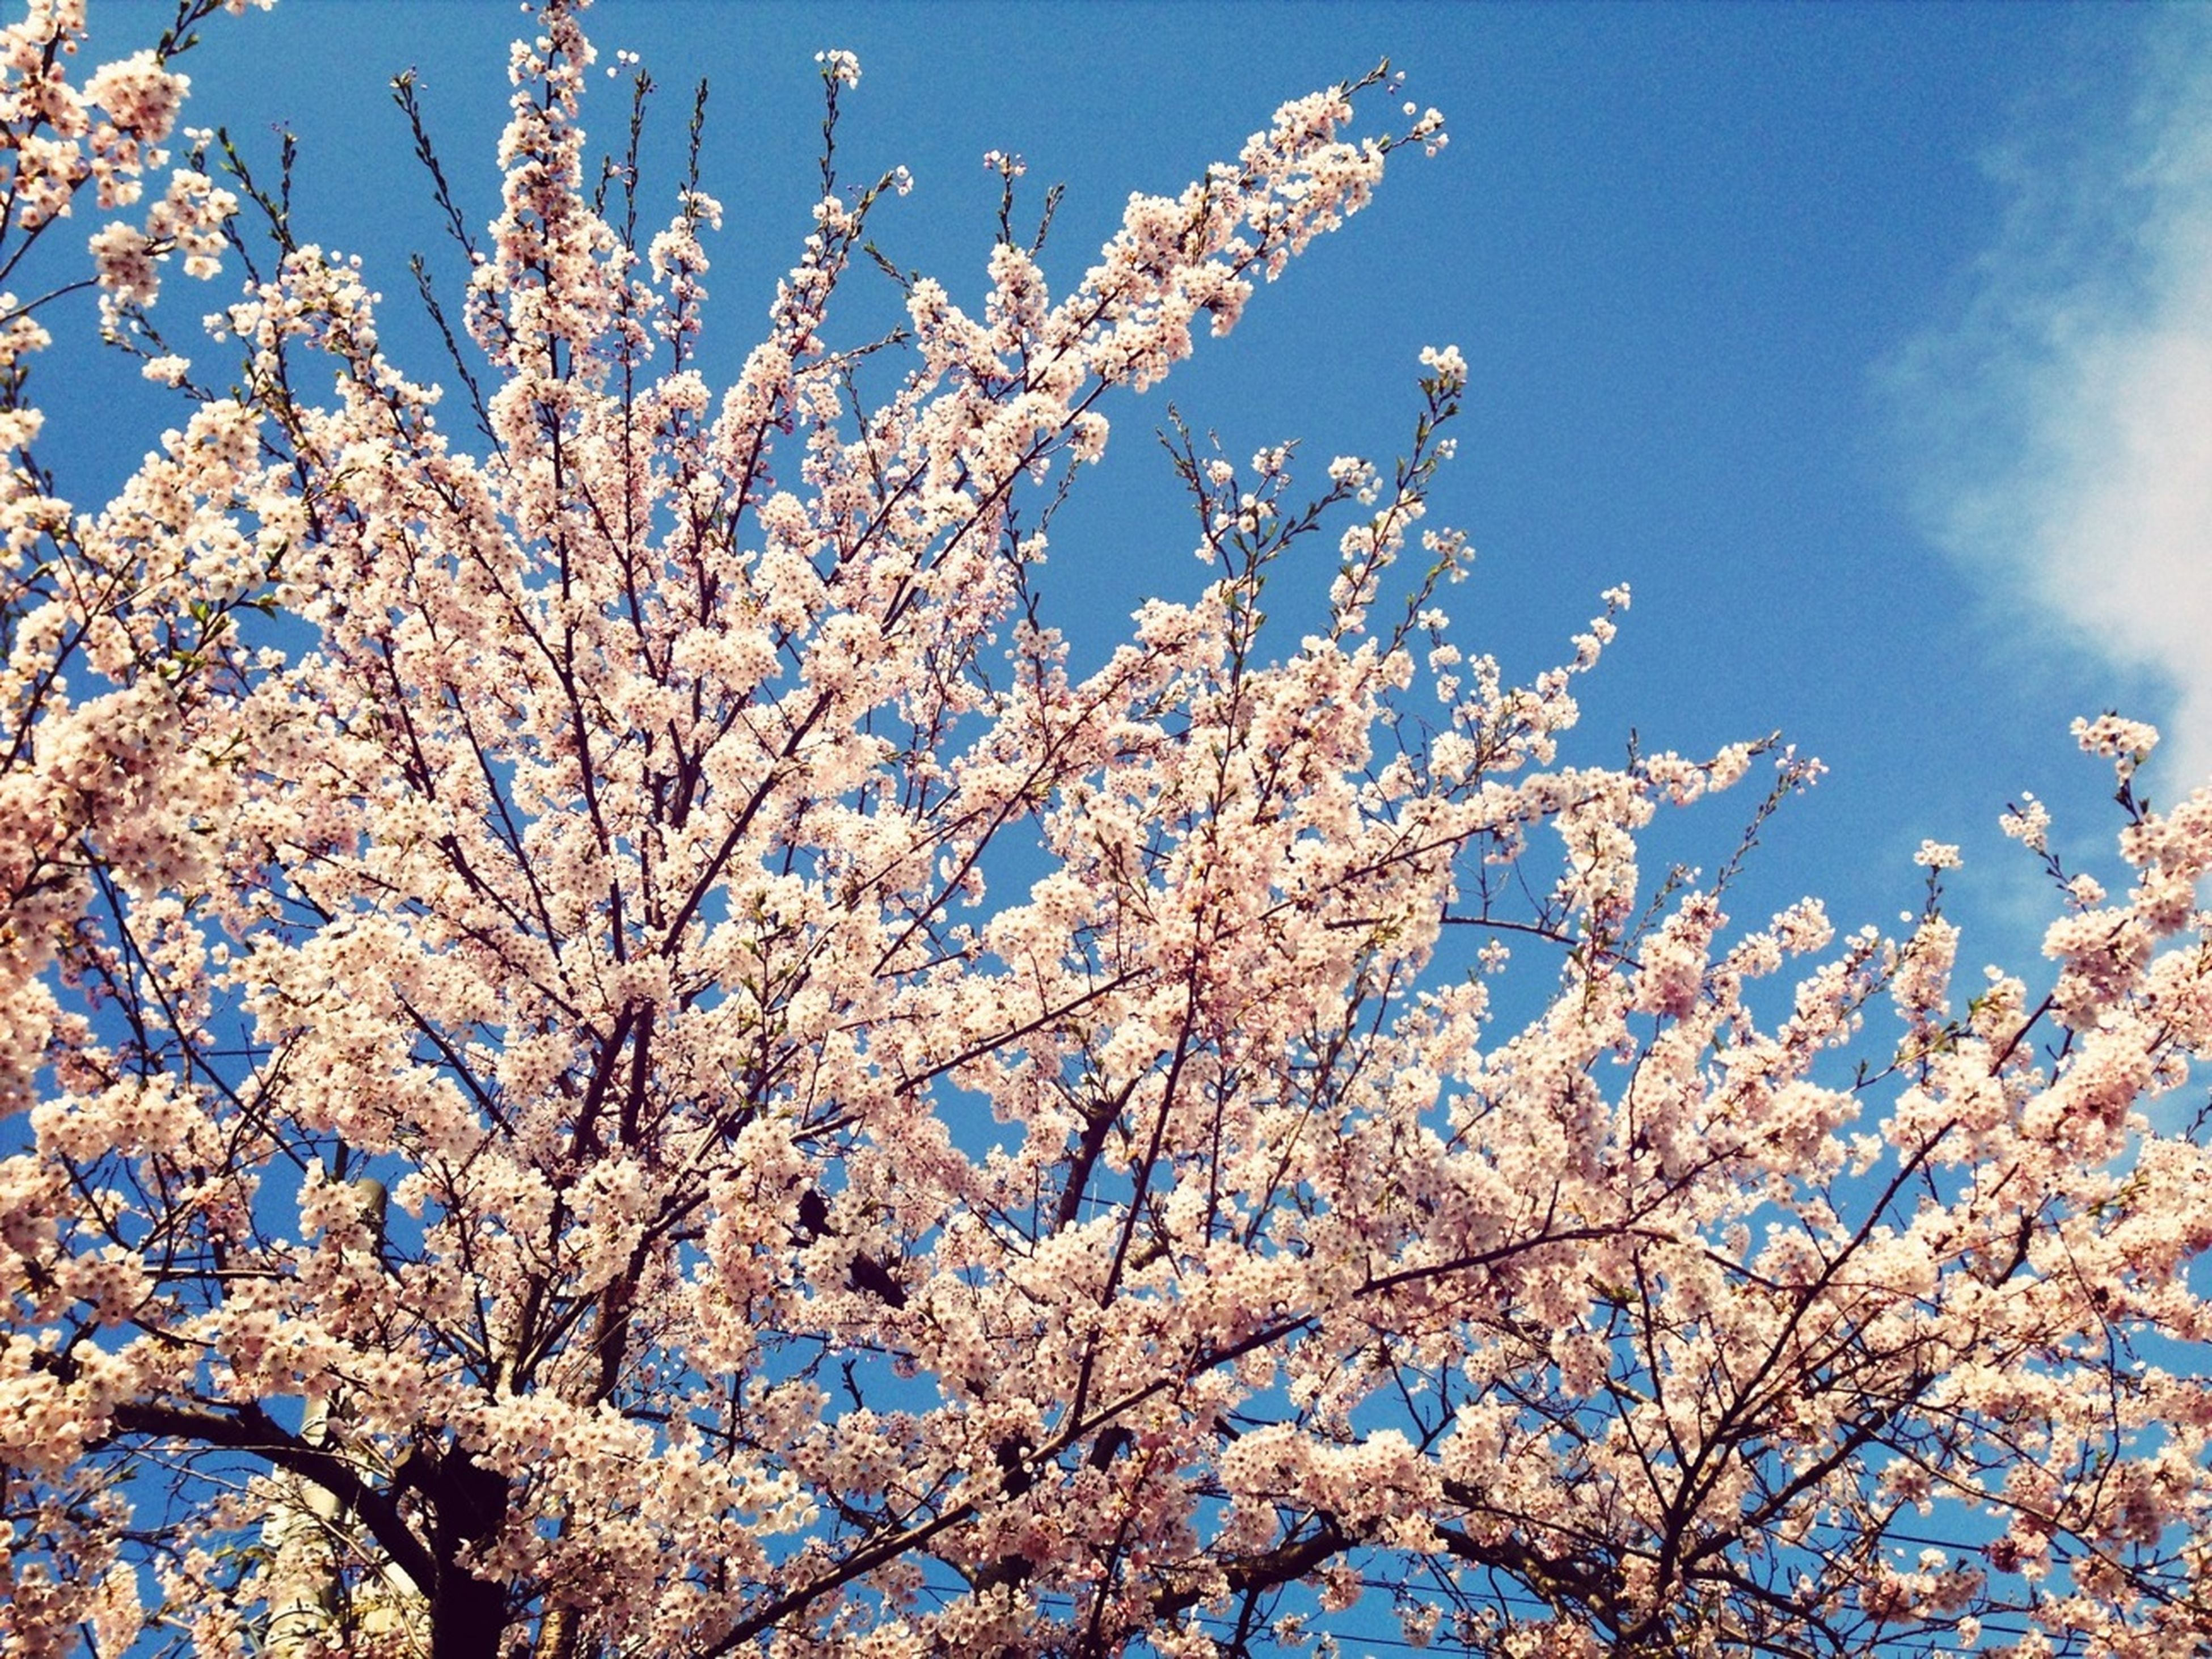 flower, branch, low angle view, tree, freshness, cherry blossom, growth, blossom, beauty in nature, fragility, cherry tree, nature, sky, in bloom, springtime, blooming, blue, fruit tree, clear sky, white color